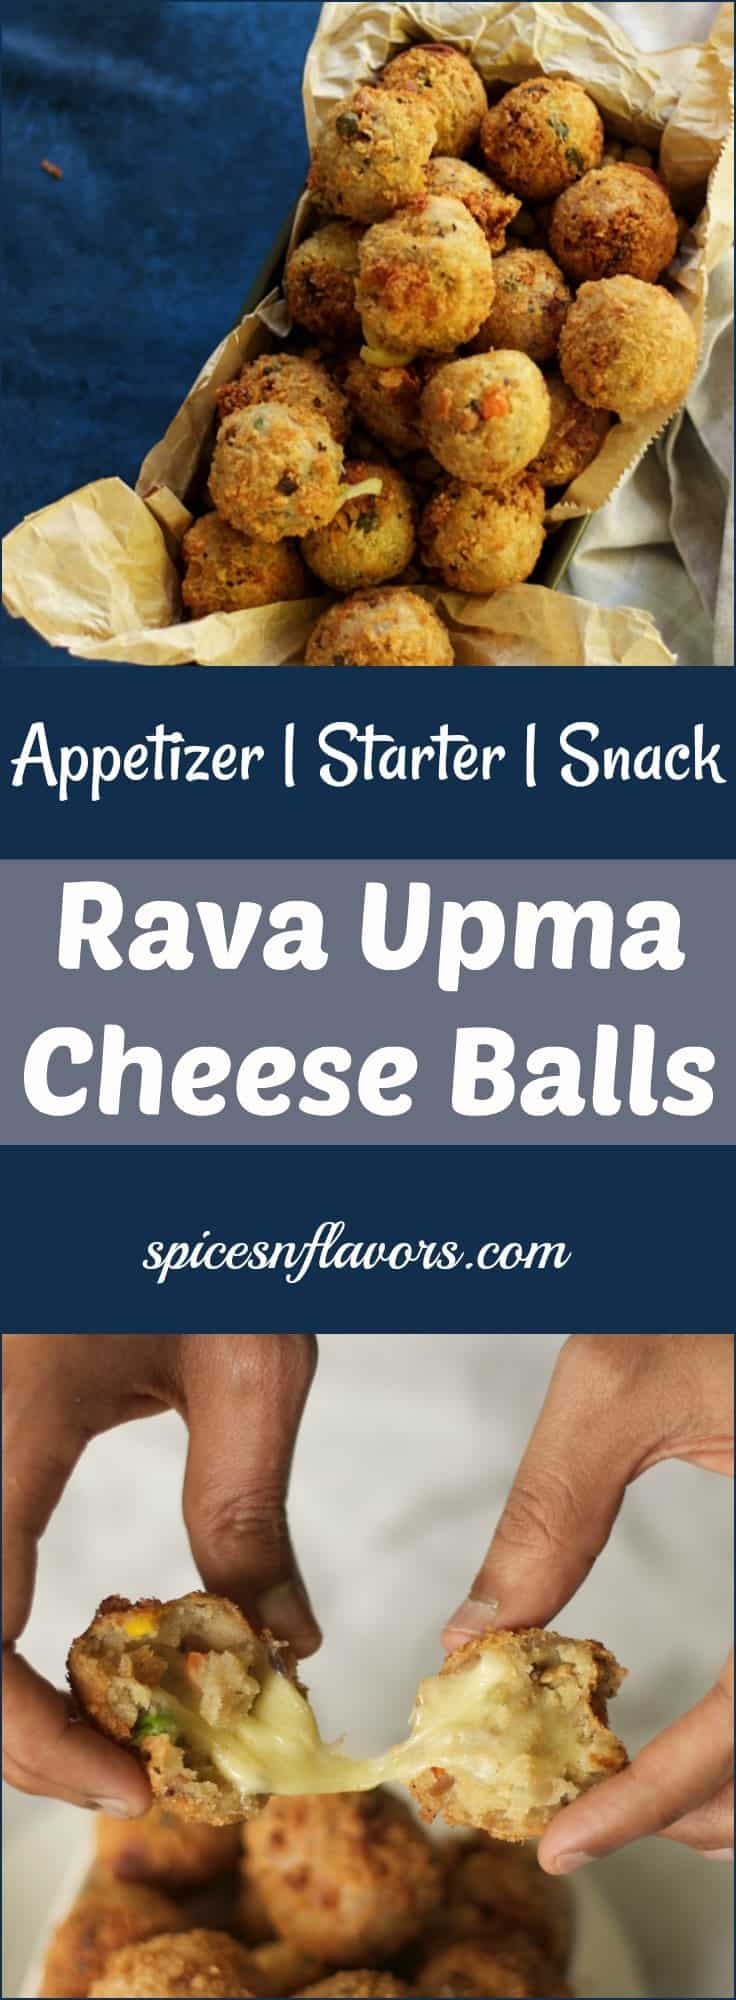 rava upma cheese balls how to make use of leftover rava upma rava upma breakfast recipe quick and simple easy breakfast leftover rava upma recipe